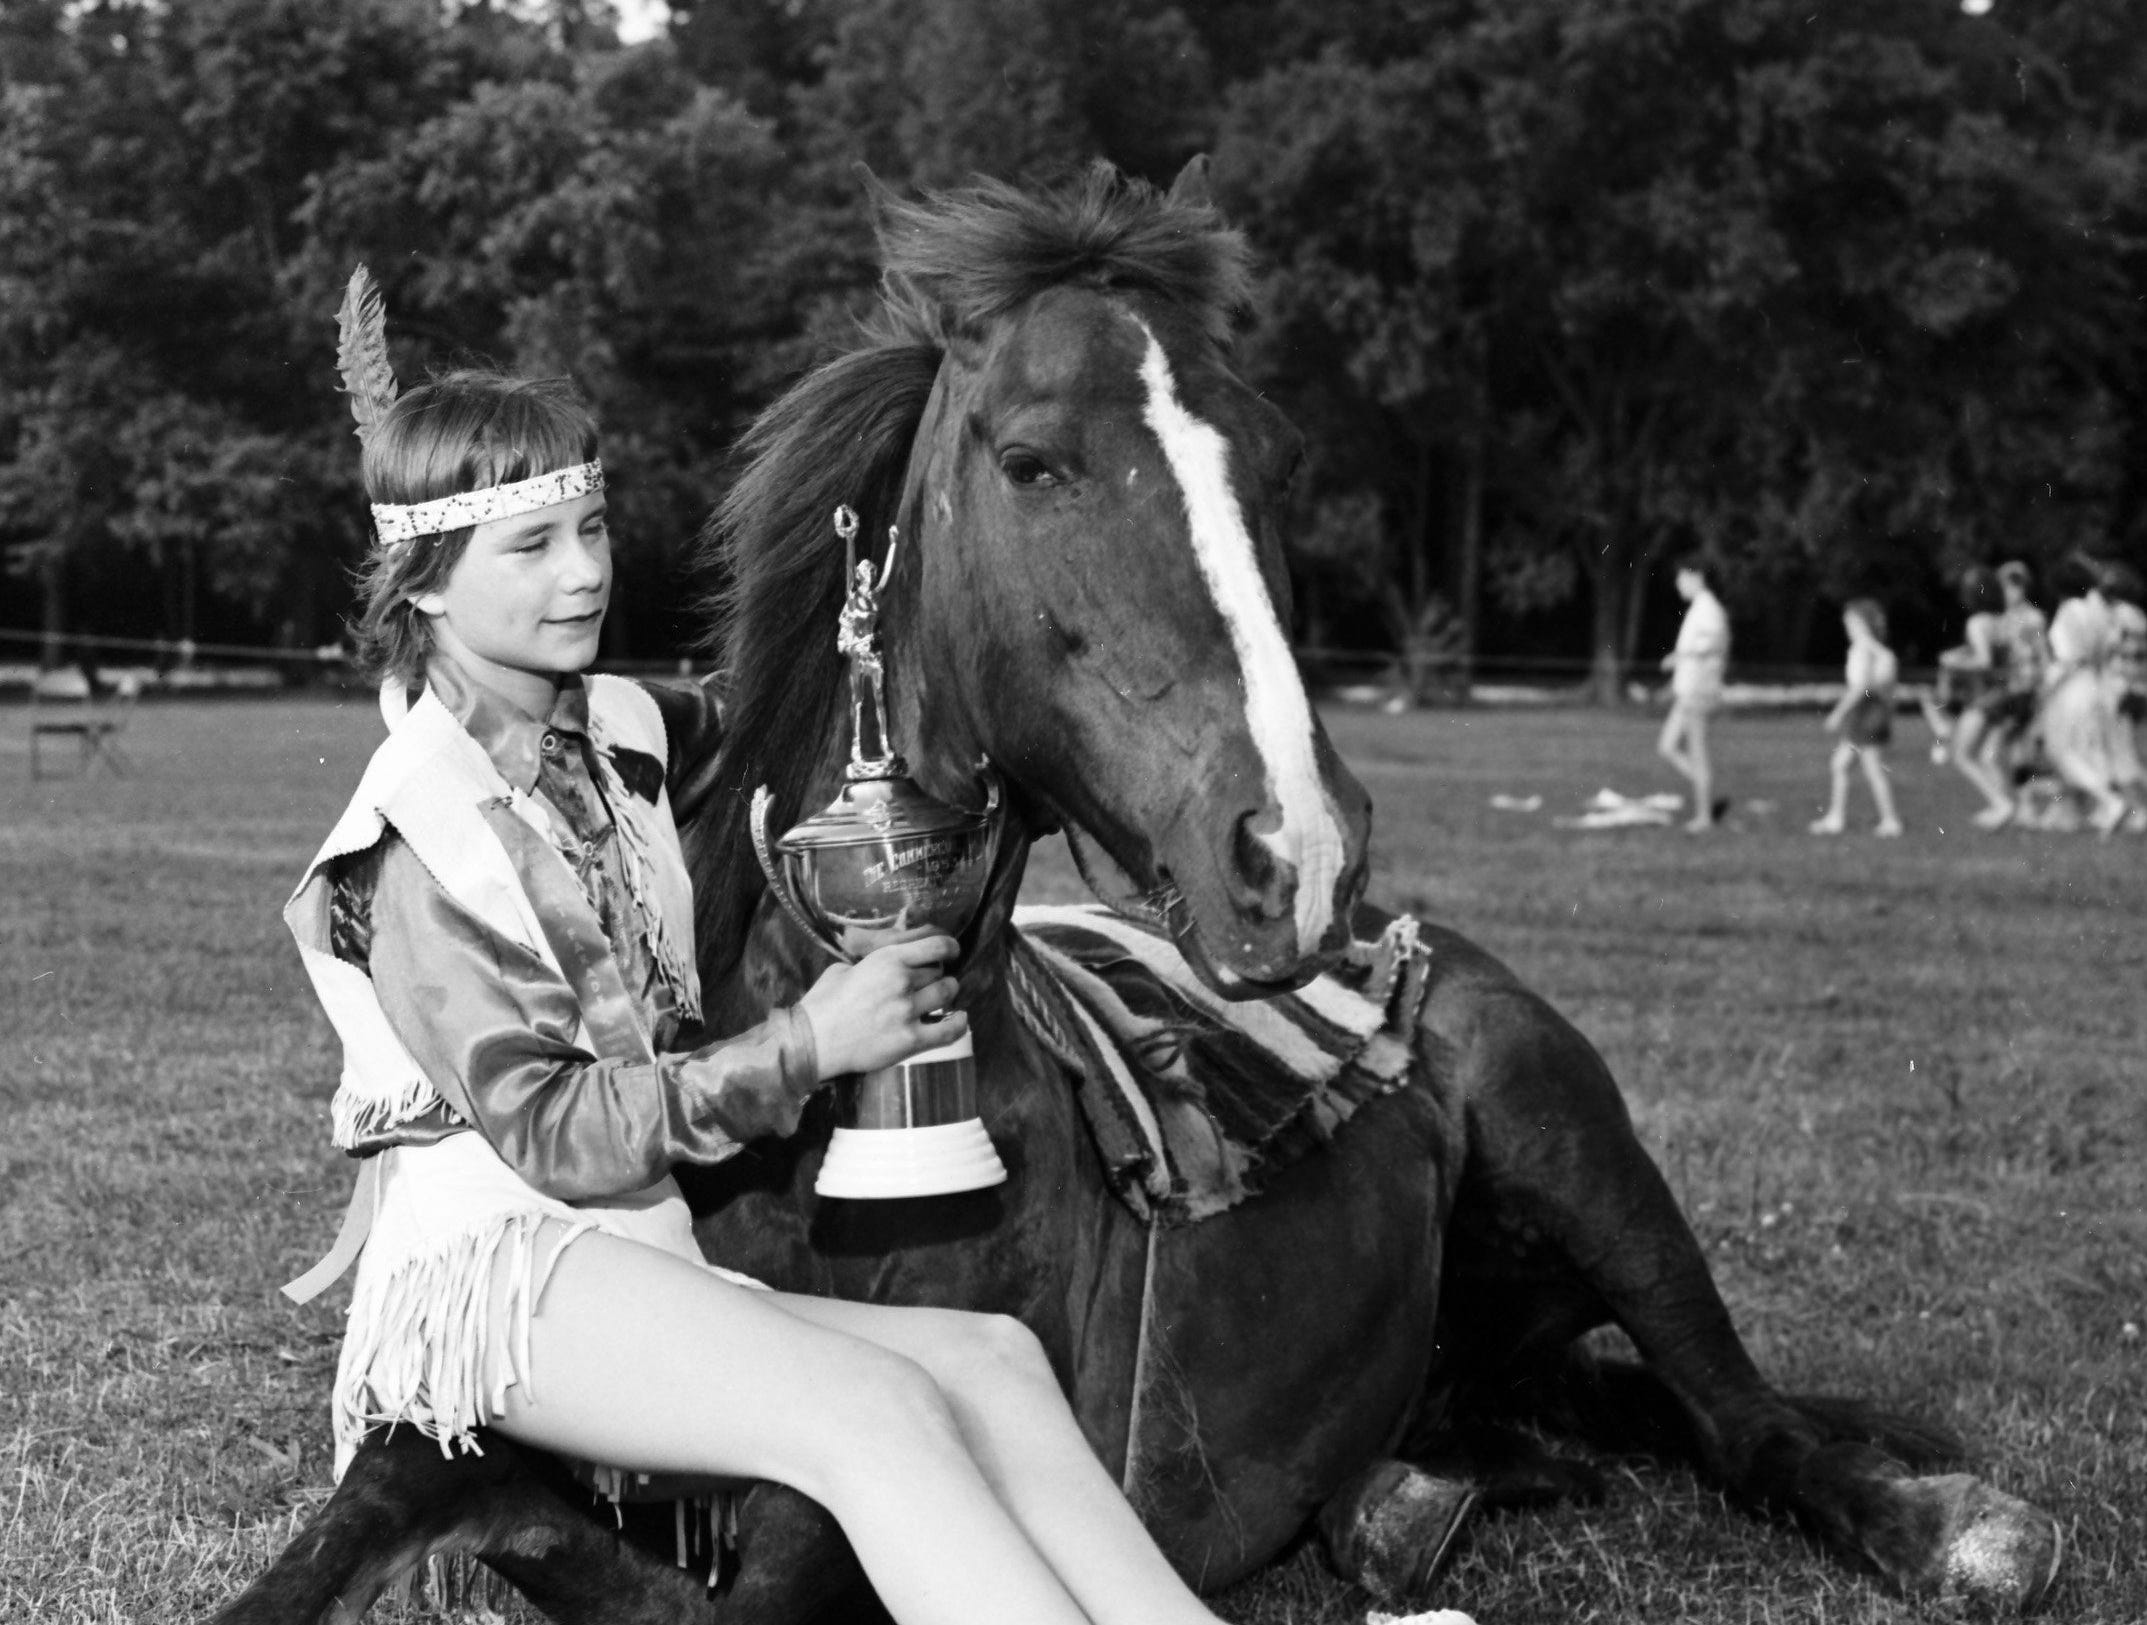 Sharleen Eastman, 13-year-old daughter of Mr. and Mrs. H.E. Eastman of the Fairgrounds, became grand winner of The Commercial Appeal-Recreation Department Pet Parade and Zoo Day celebration at Overton Park in May 1953. Her silver-hooved trick mare was judged best pet. The horse's name is not known.